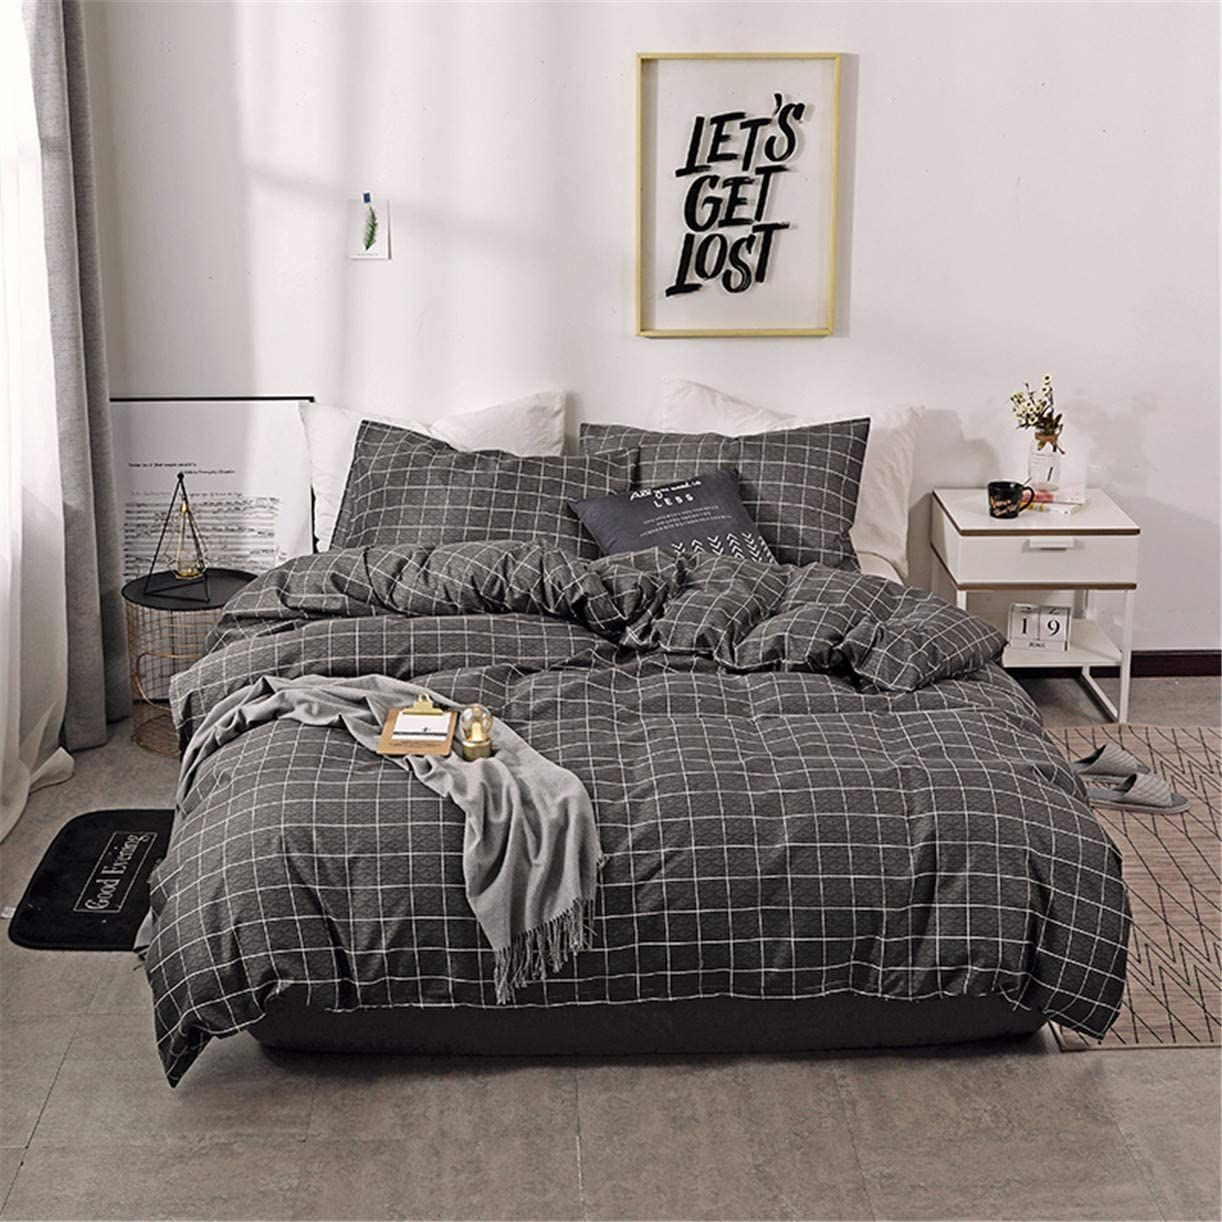 Farmhouse Duvet Covers Rustic Duvet Covers Farmhouse Goals In 2020 Duvet Cover Sets Rustic Duvet Cover Farmhouse Bedding Sets